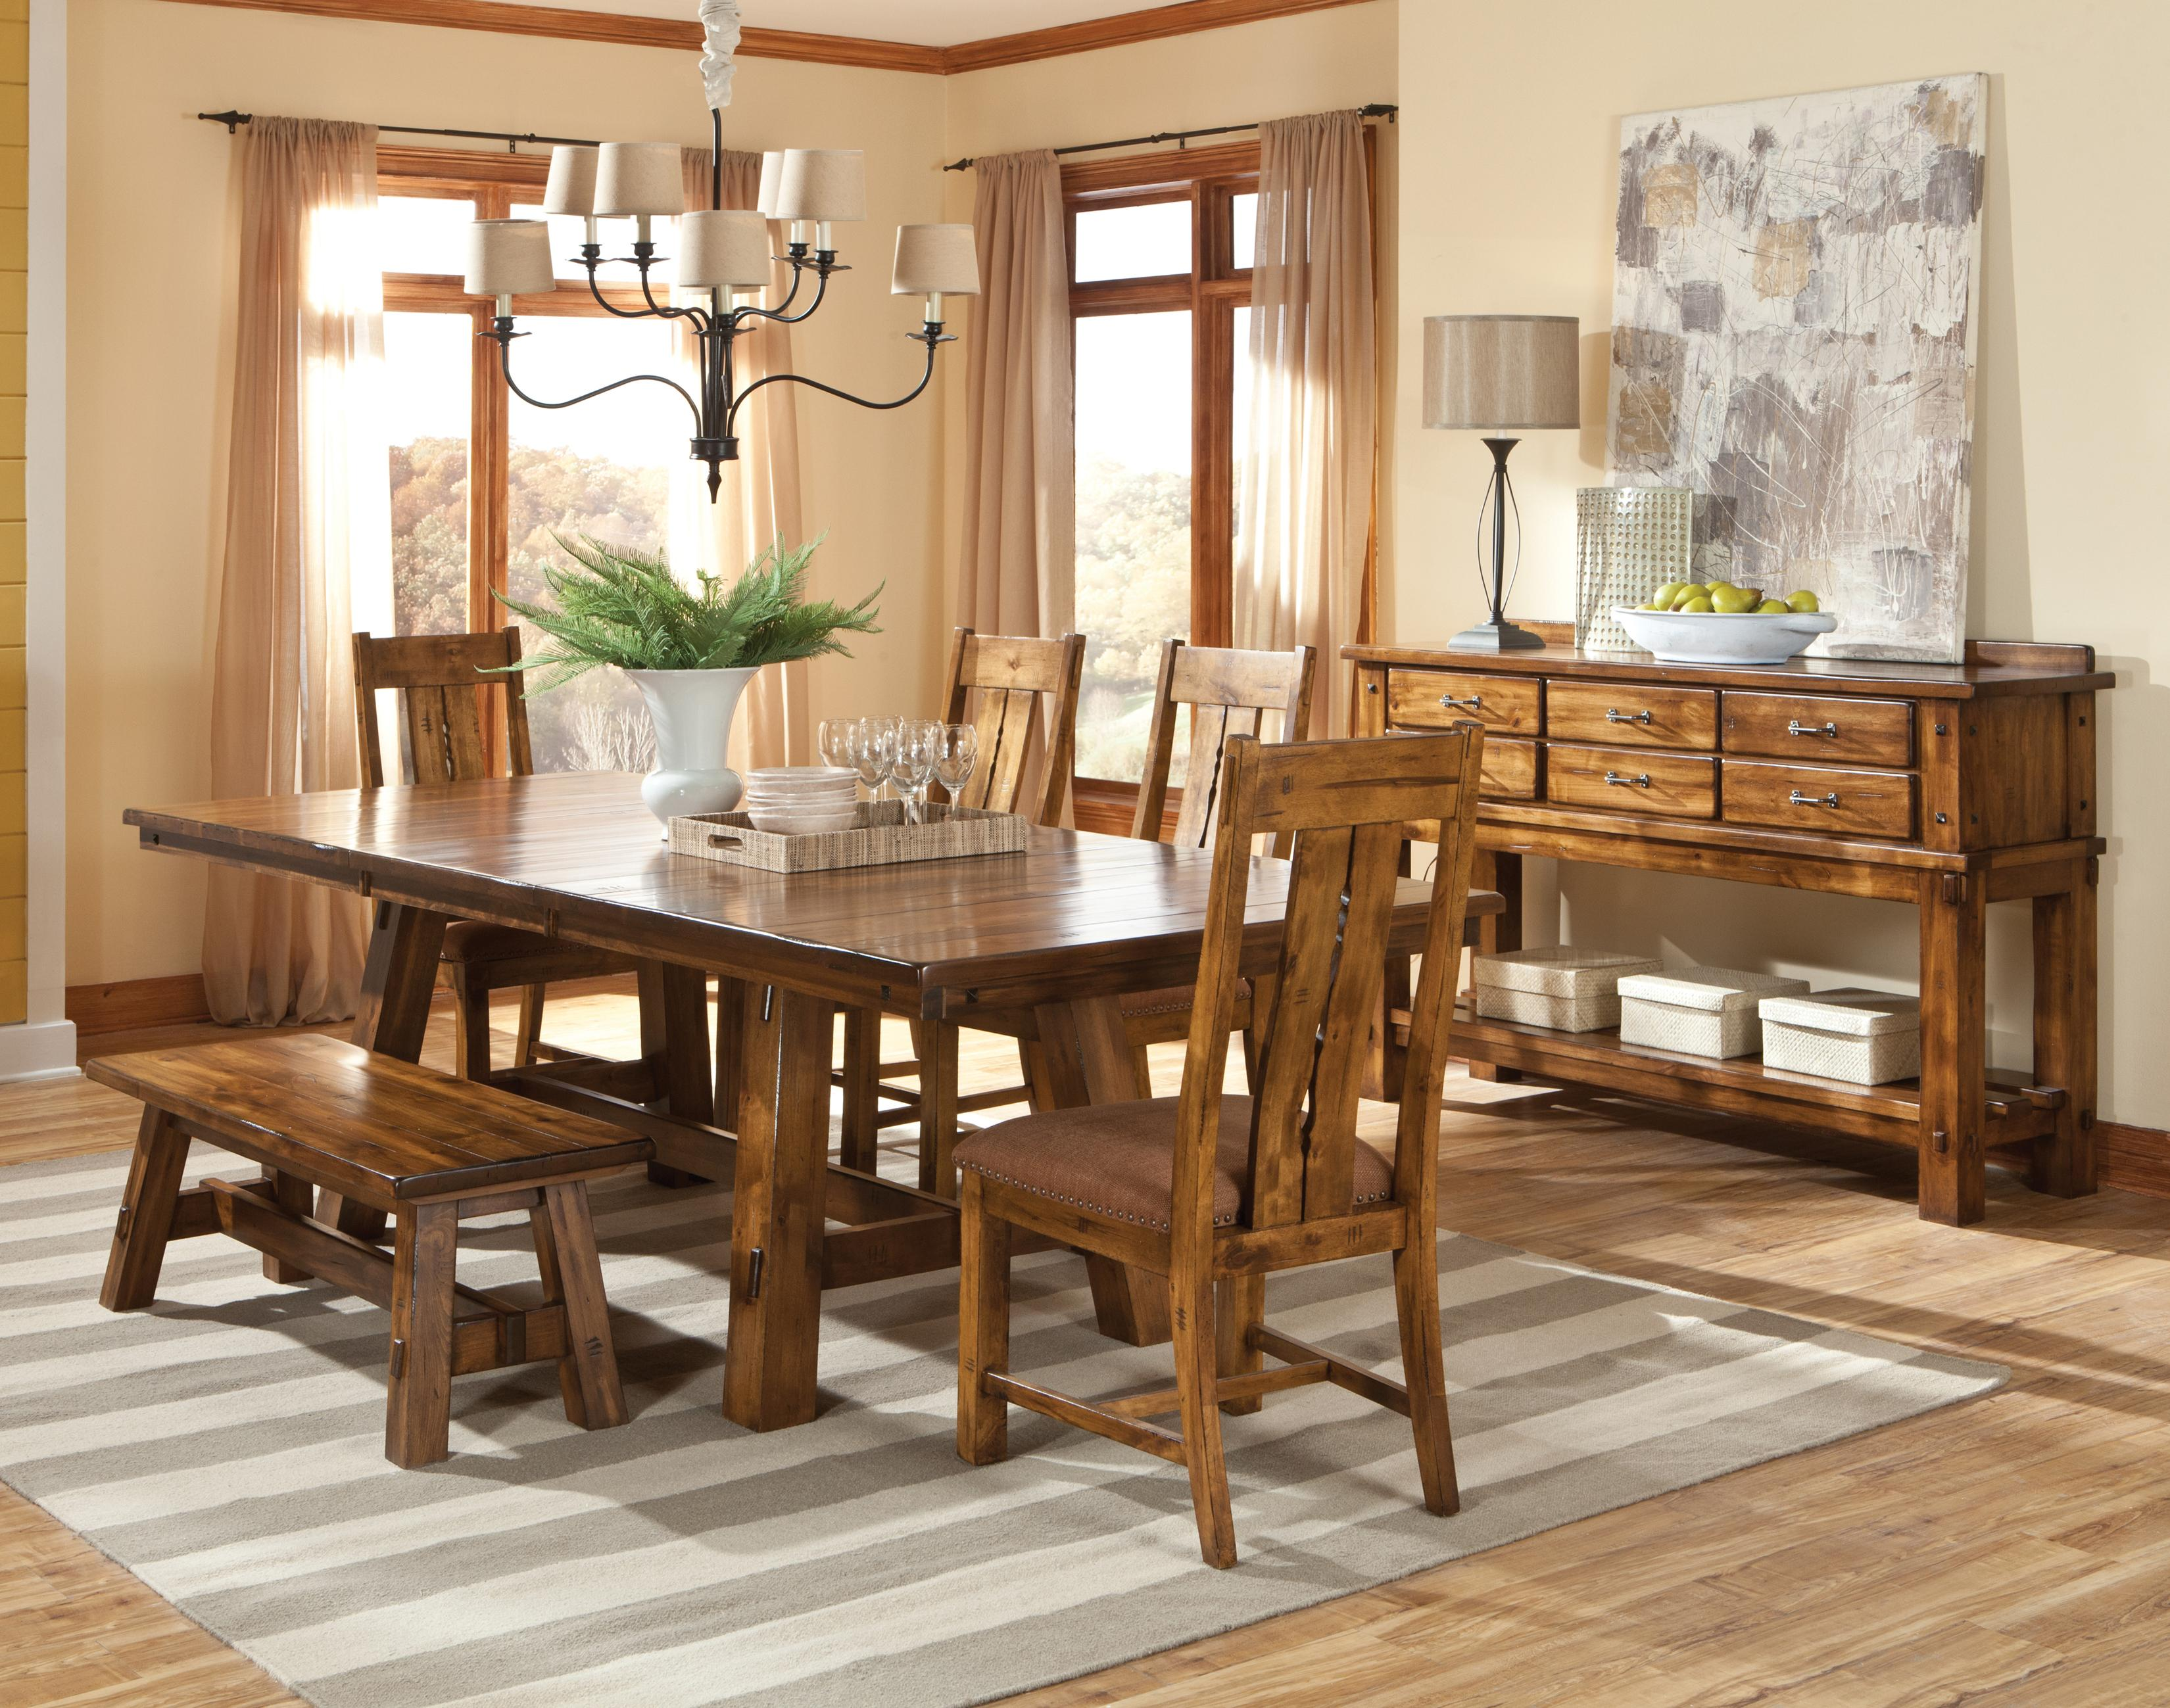 Intercon timberline casual dining room group wayside for Casual dining room